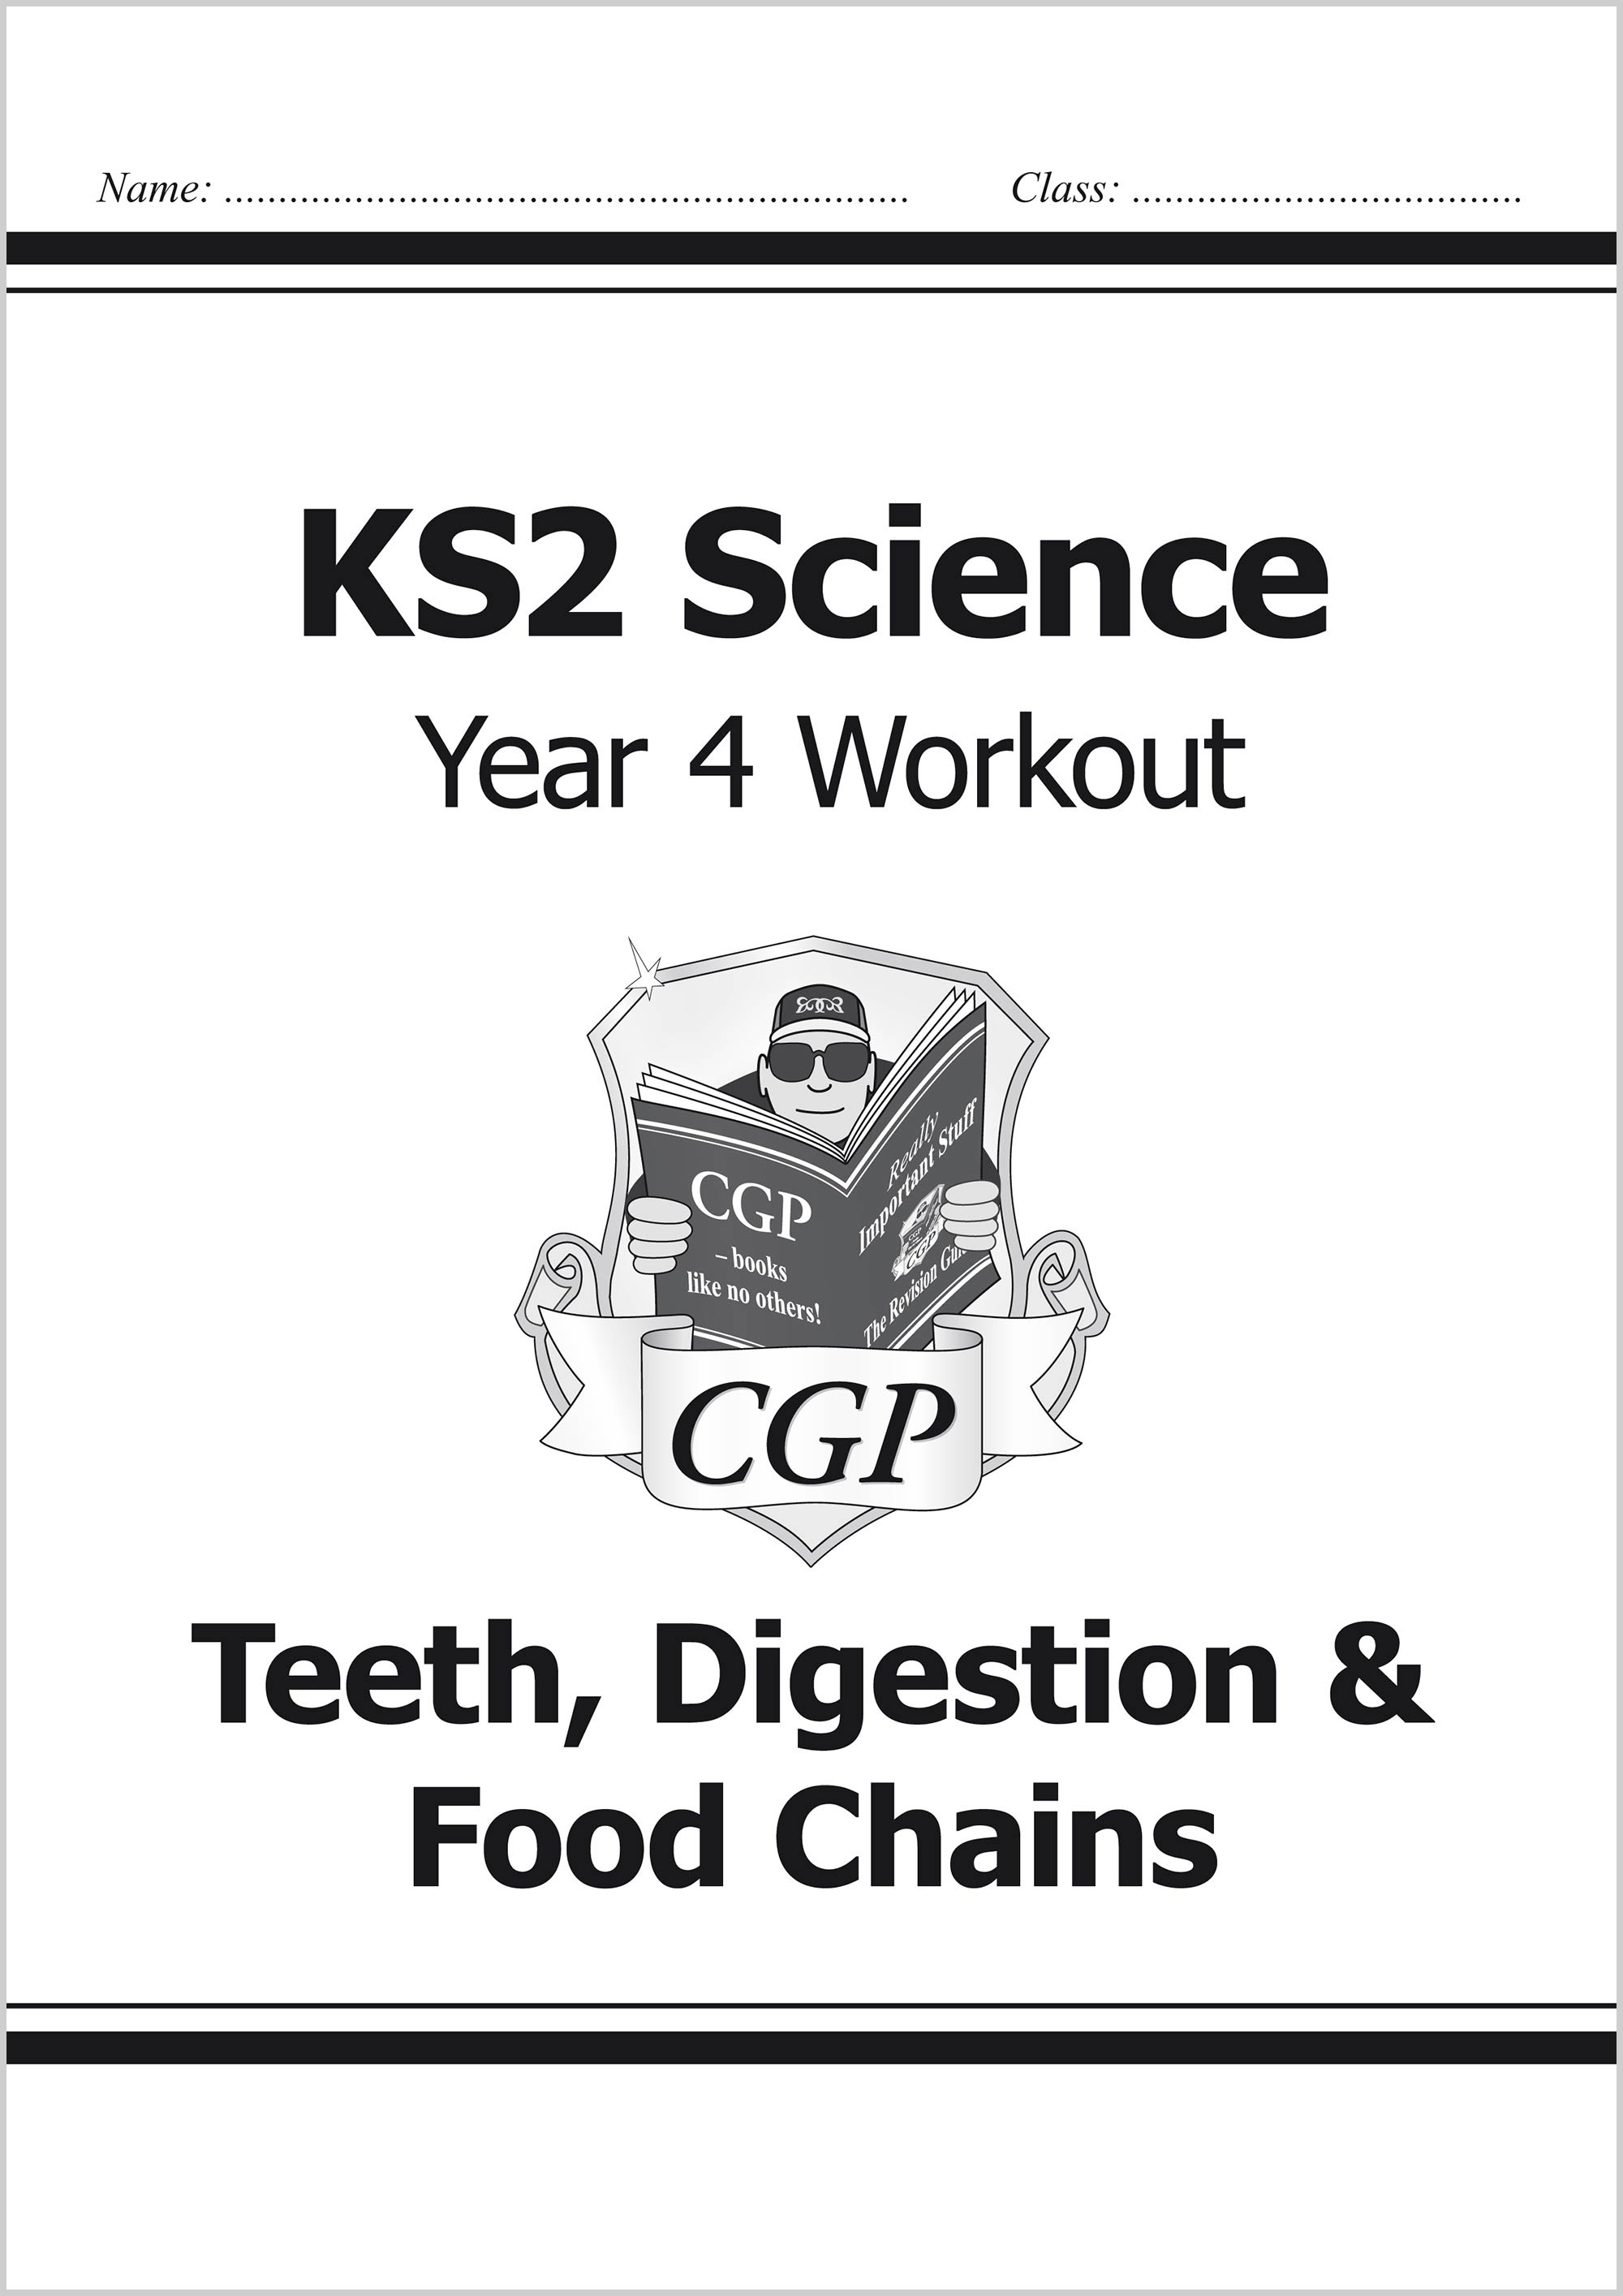 KS2 Science Year Four Workout: Teeth, Digestion & Food